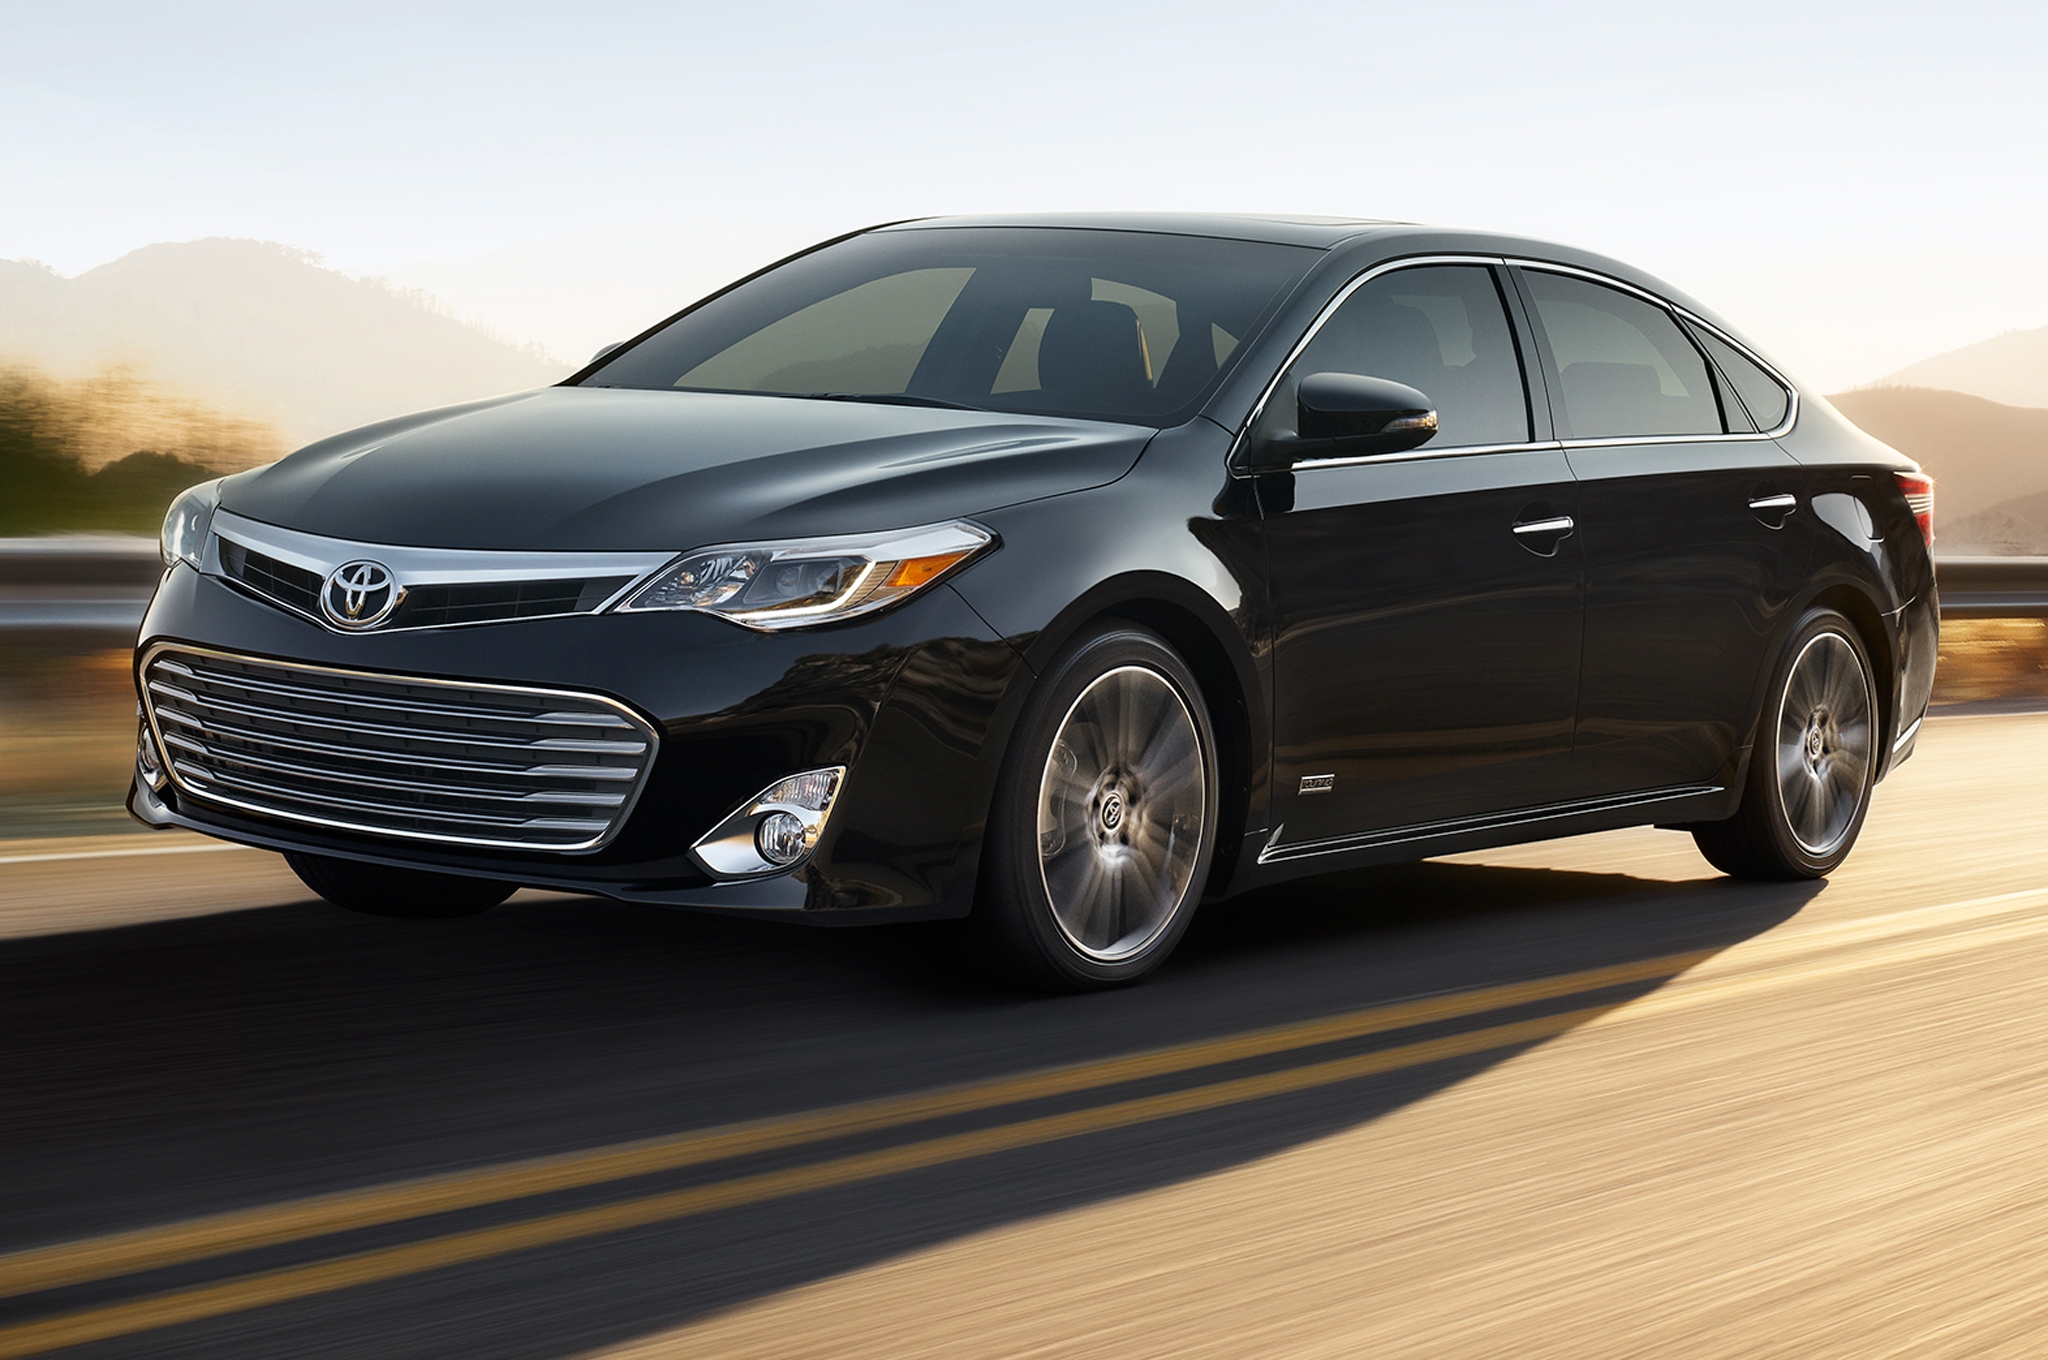 2015 toyota avalon hybrid information and photos zombiedrive. Black Bedroom Furniture Sets. Home Design Ideas